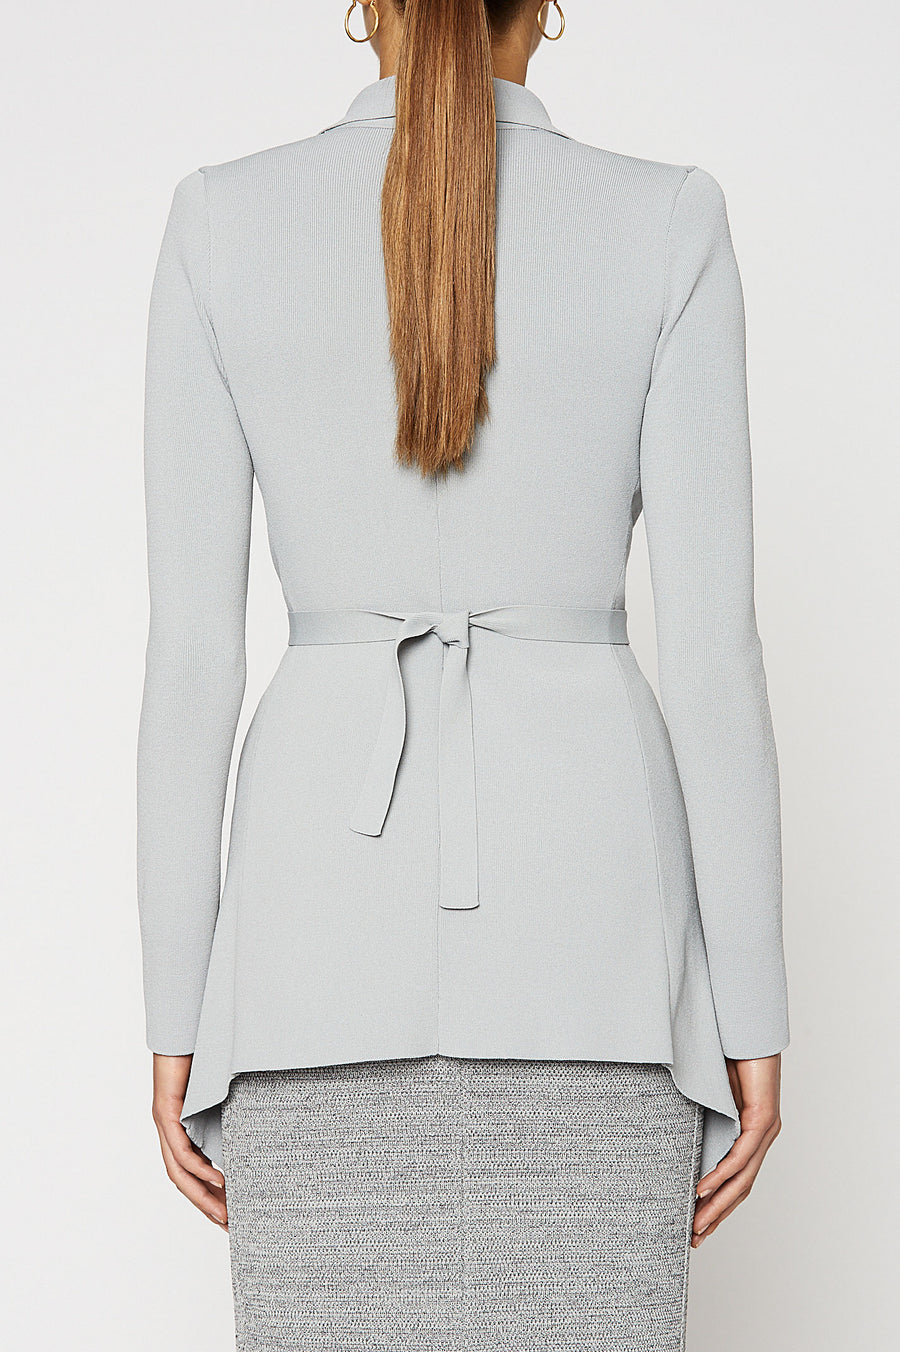 CREPE KNIT DRAPE FRONT JACKET, SMOKE color